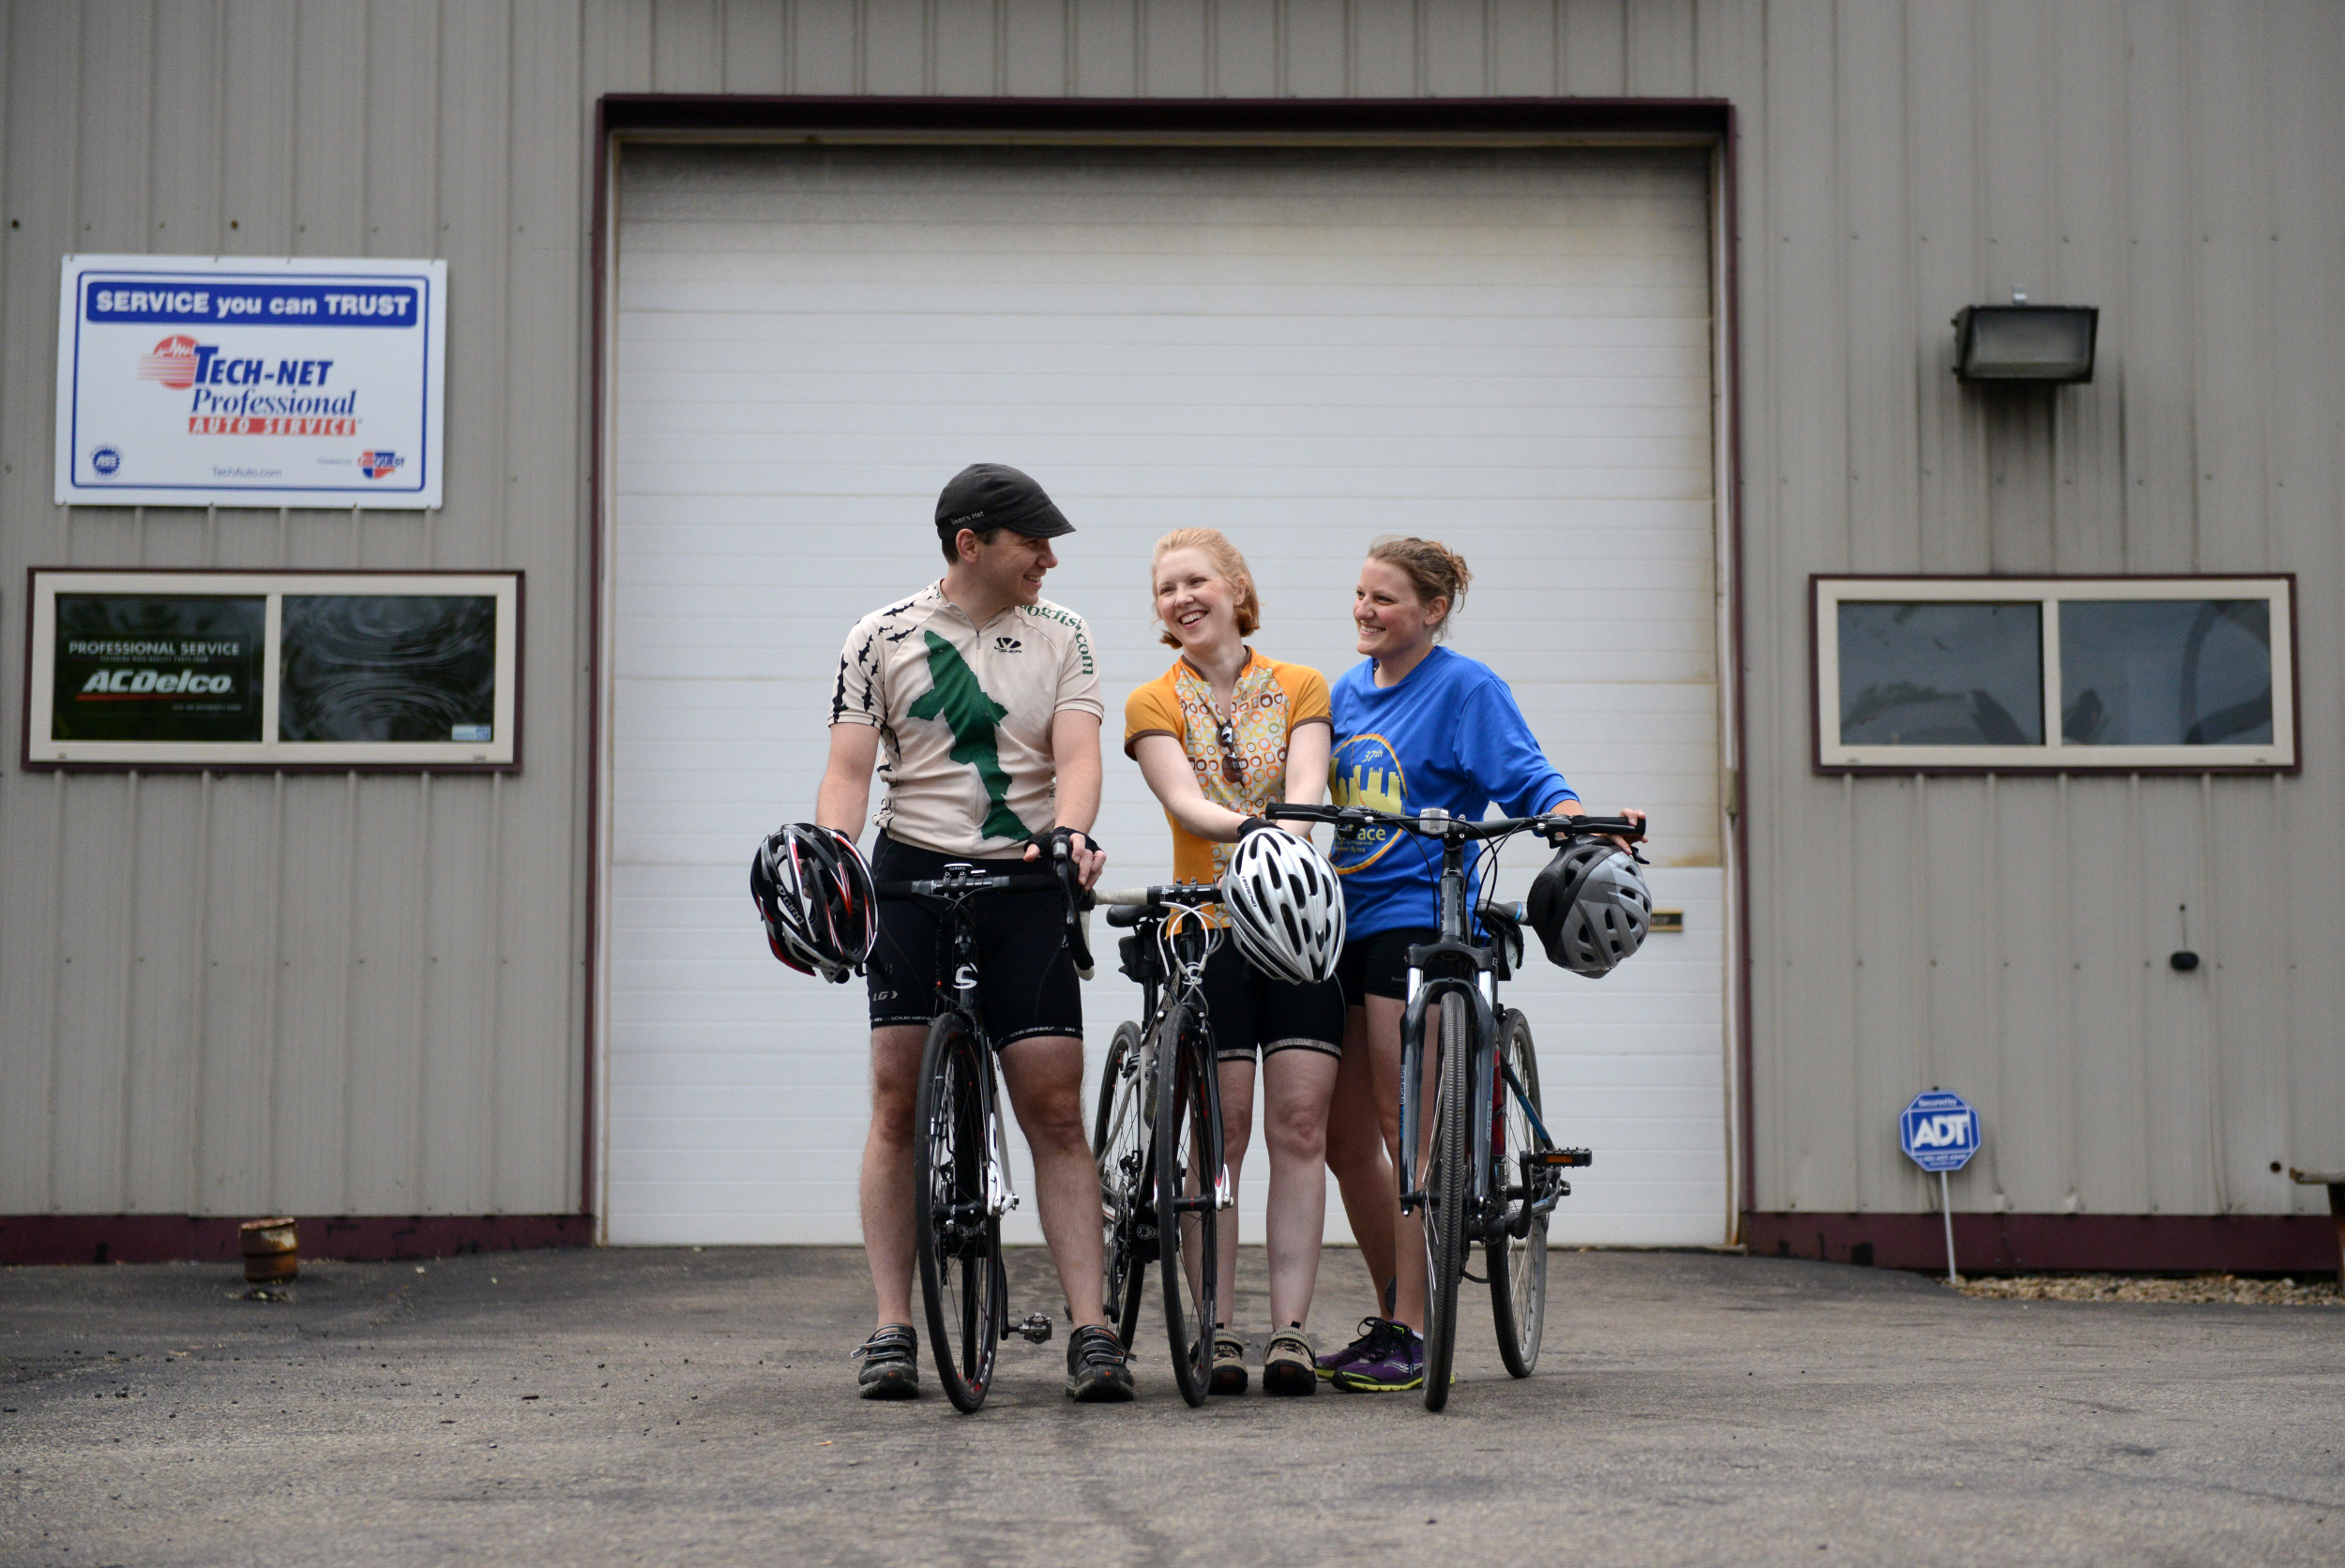 Members of the Allegheny Valley Cyclists (from left) Sean Brigden, Erin Bridgen, and Danyelle Hooks, share a laugh in Creighton on Tuesday, Aug. 25, 2015.